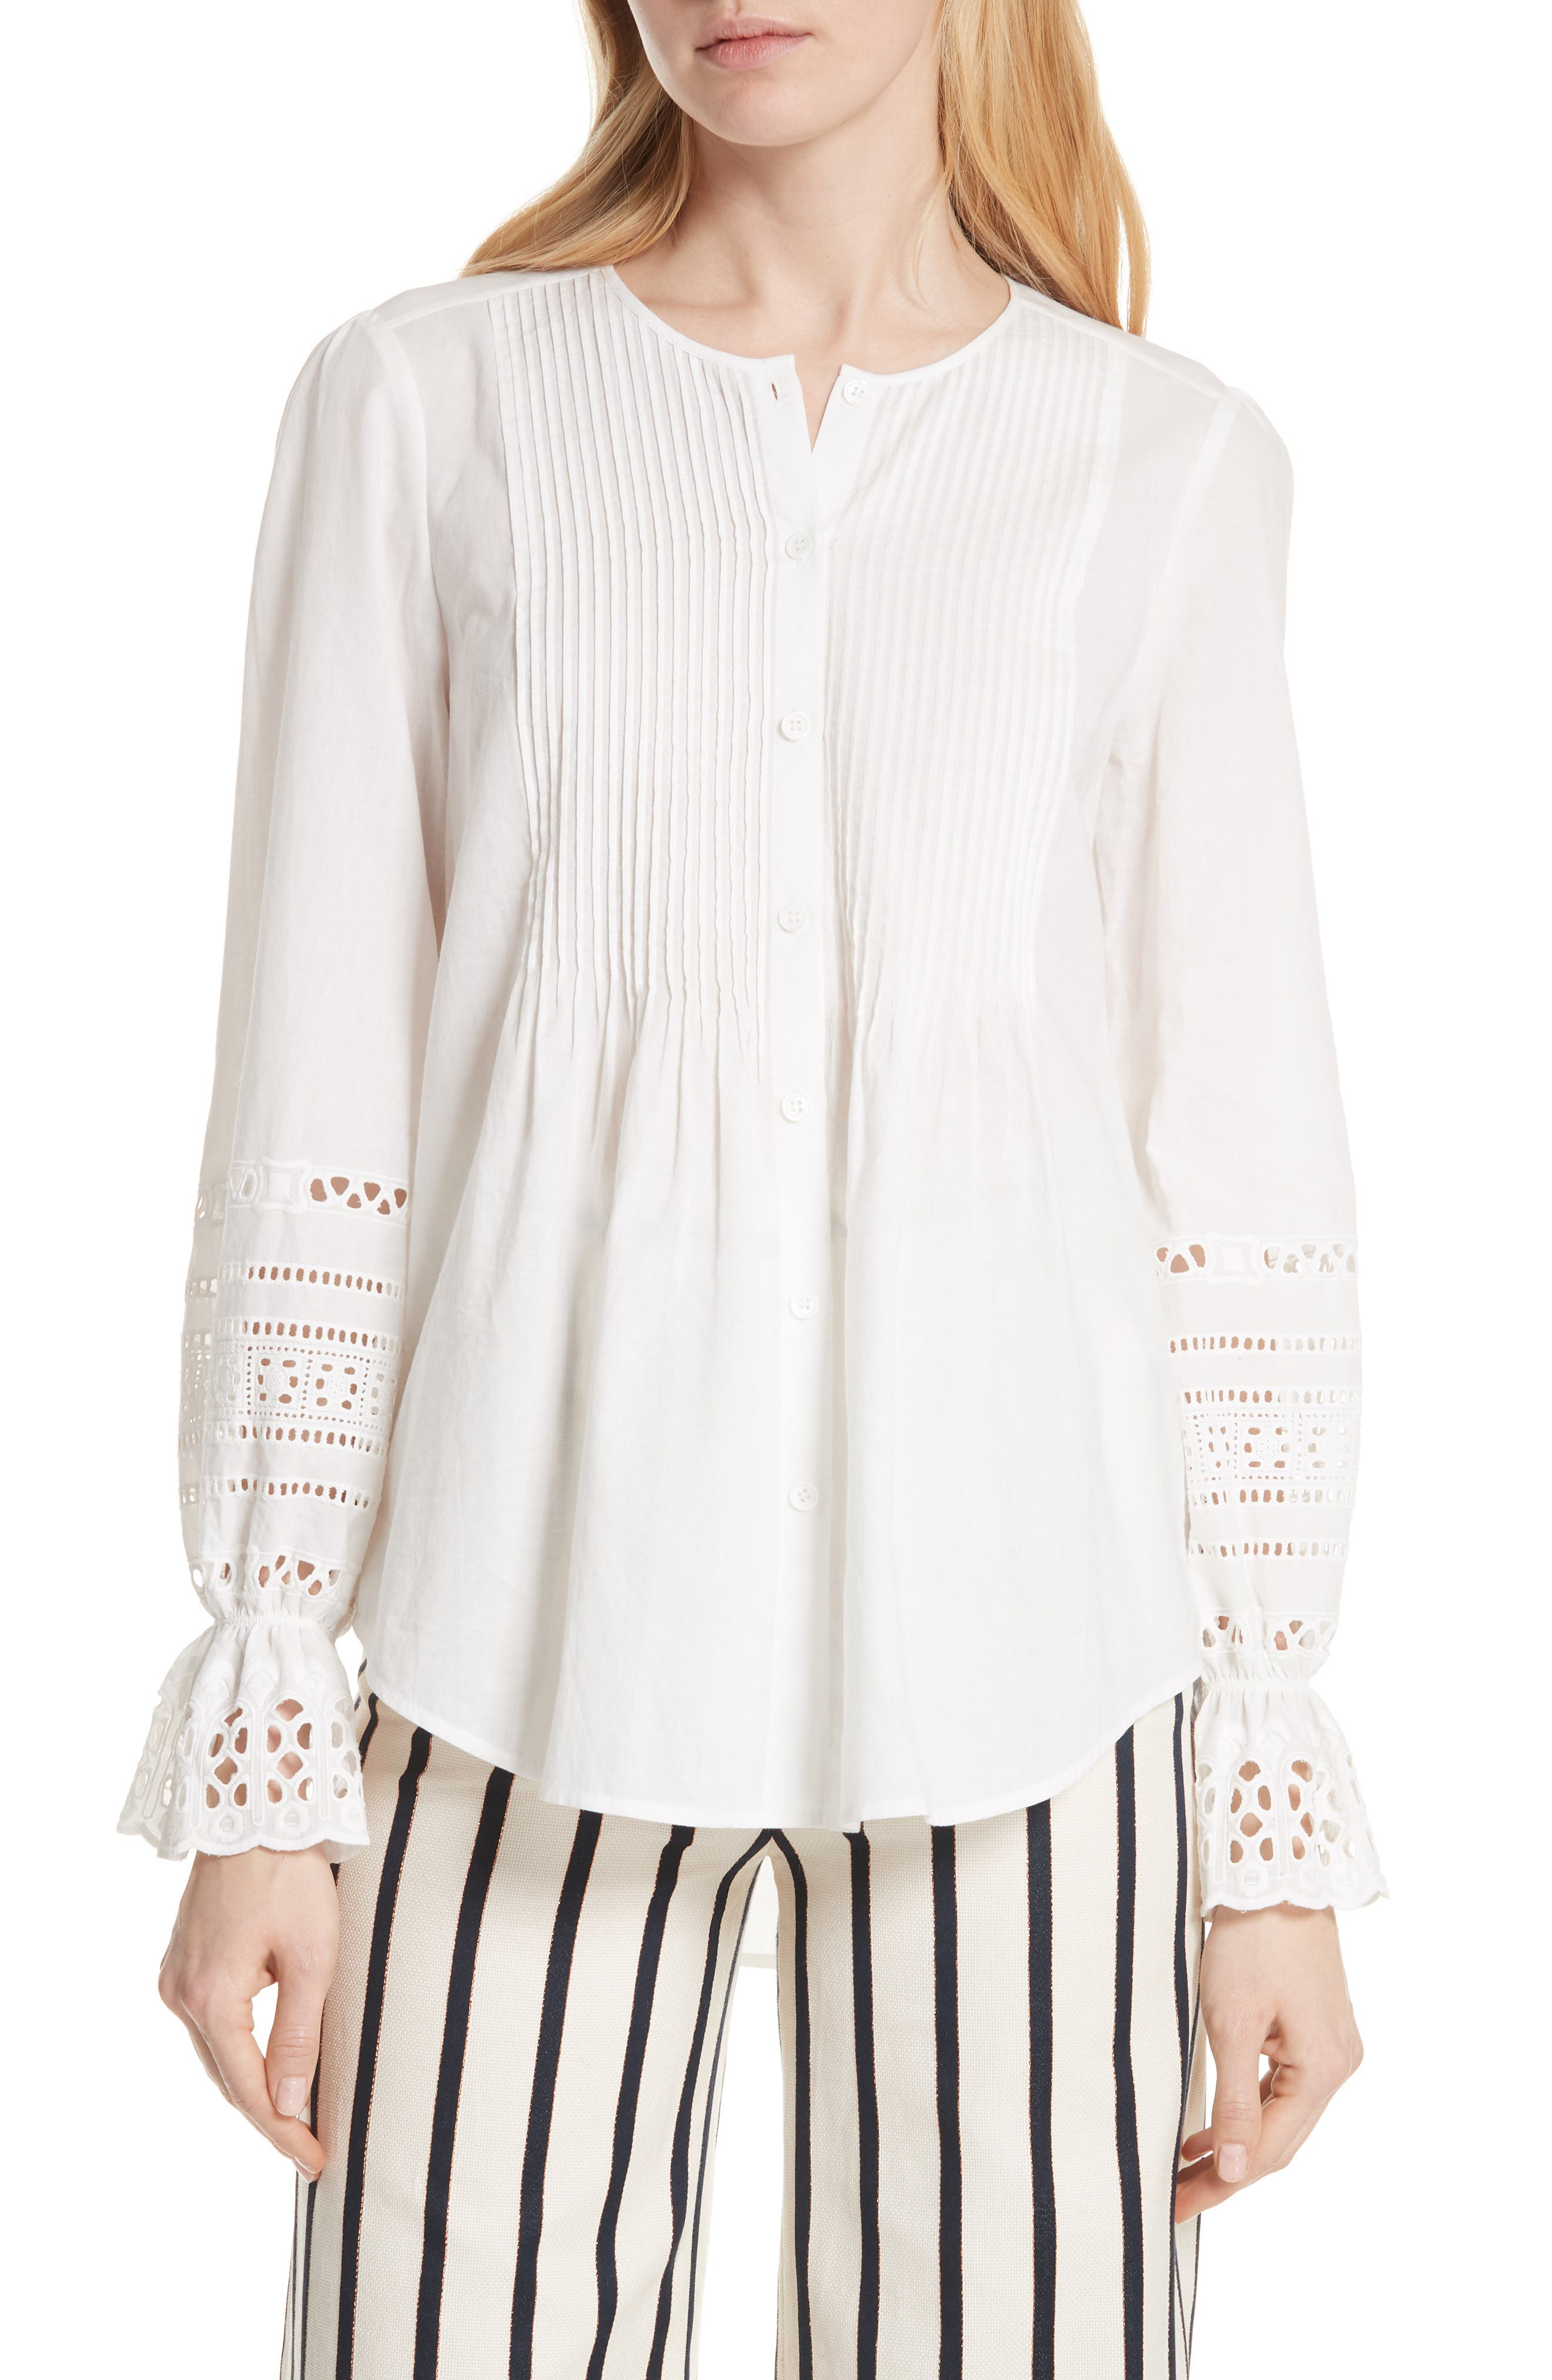 Mili Eyelet Sleeve Top,                             Main thumbnail 1, color,                             White